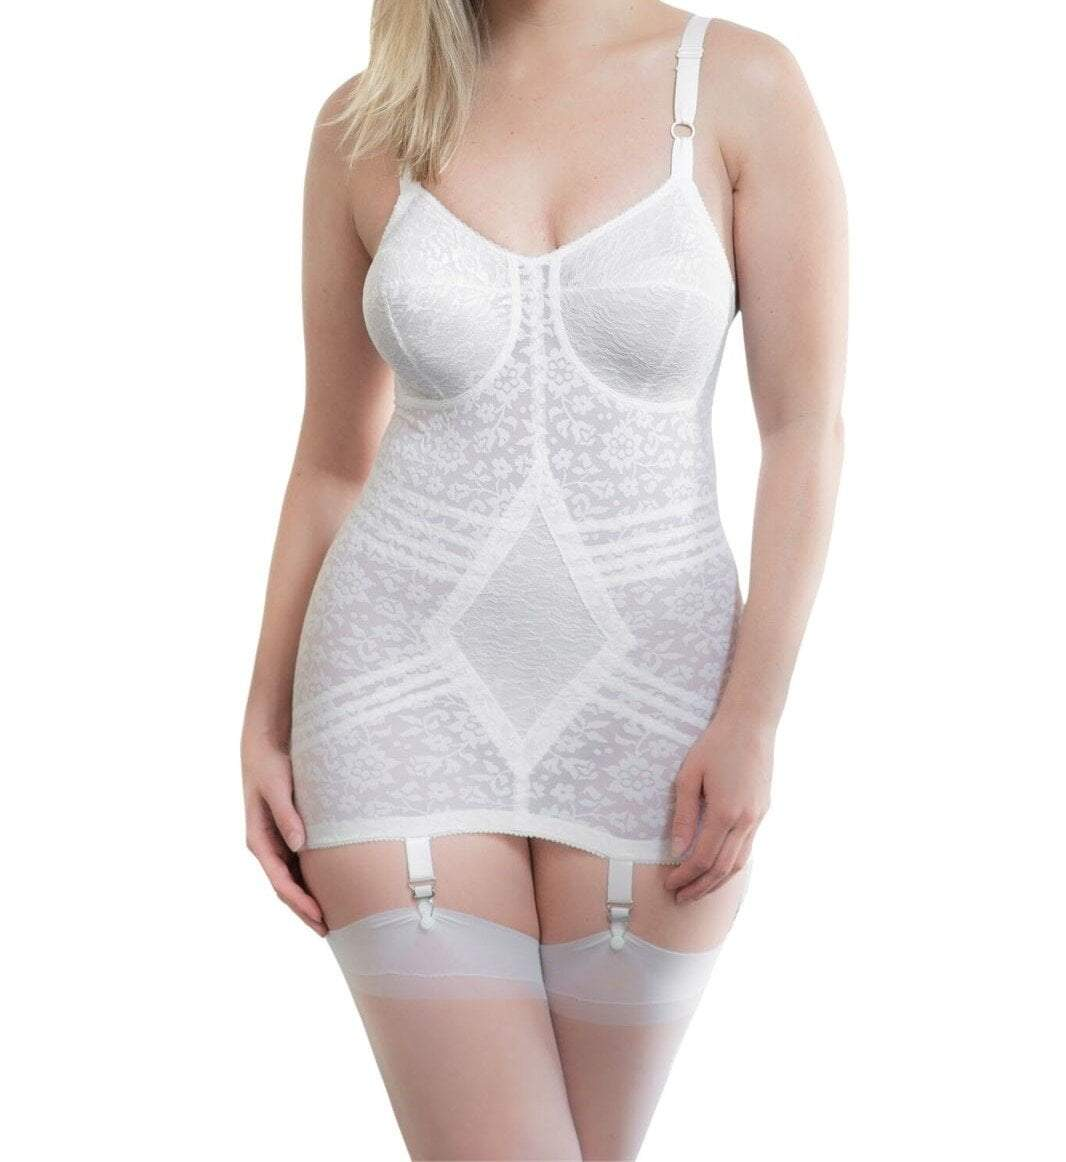 e70bf838225 RAGO Style 9357 - Body Briefer Extra Firm Shaping - White – American ...